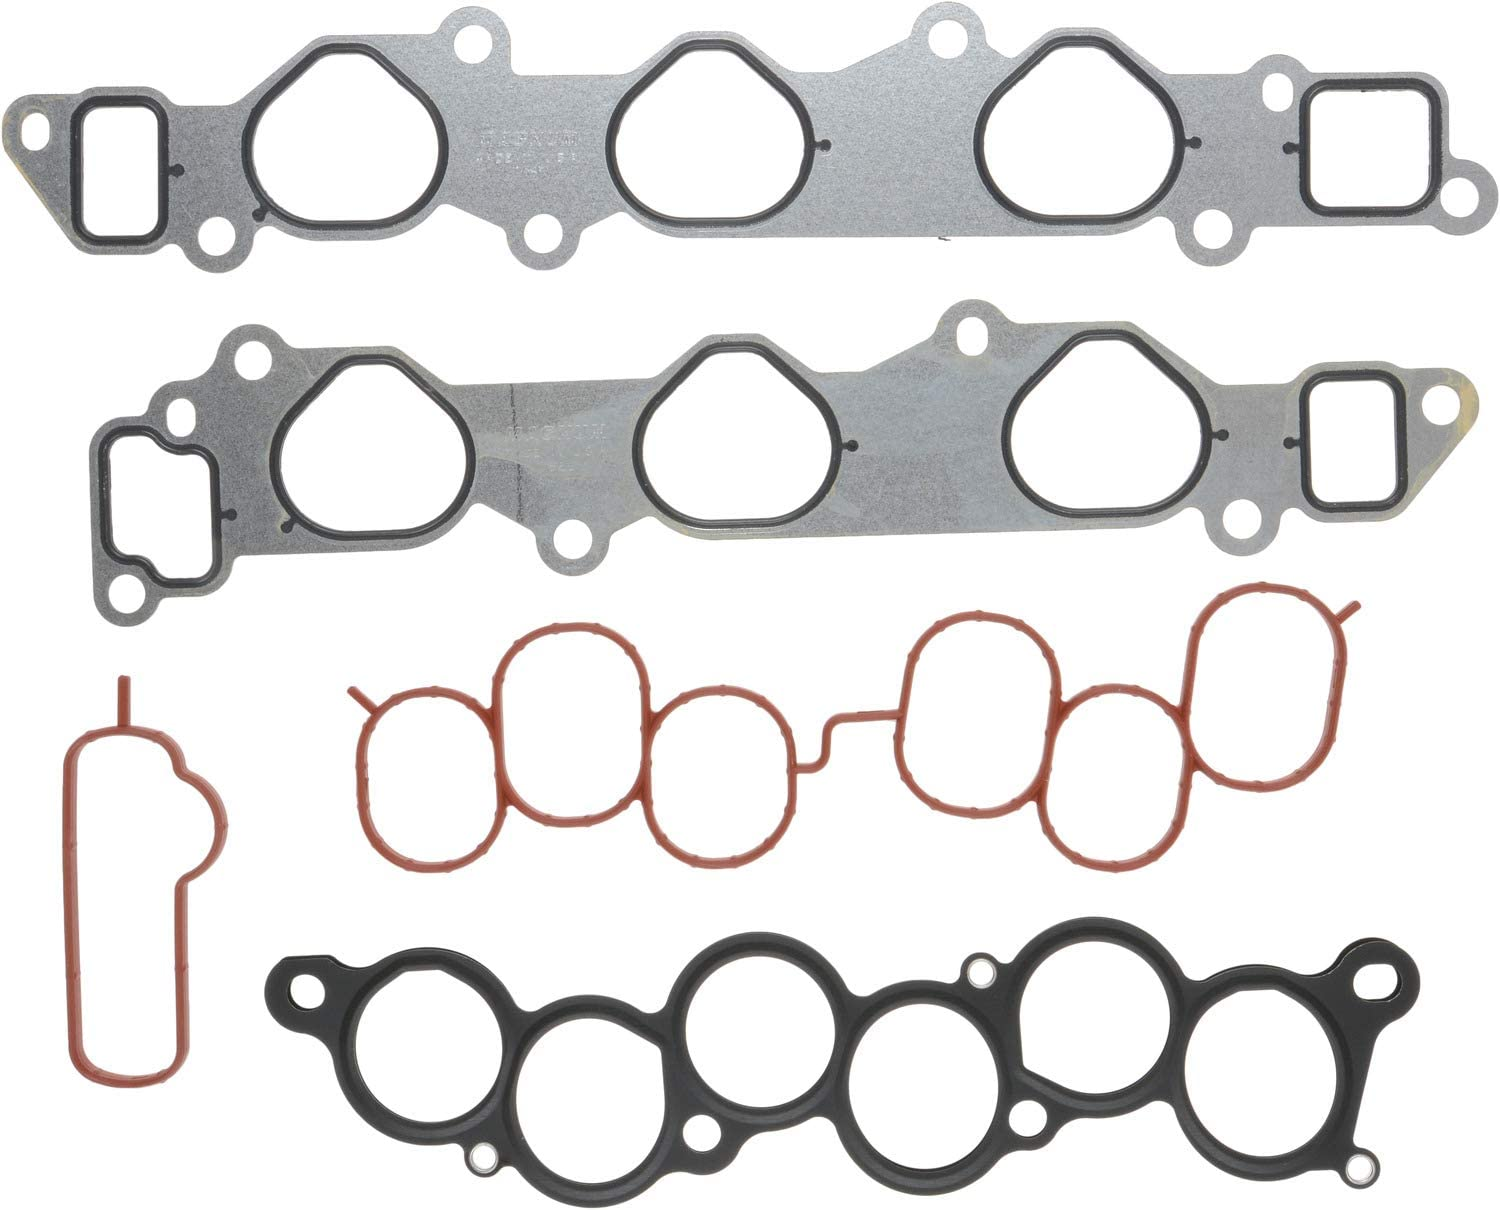 Victor Reinz 15-43044-01 MaxDry STL Intake Manifold Gasket Set for 94-06 Toyota and Lexus 3.0L V6